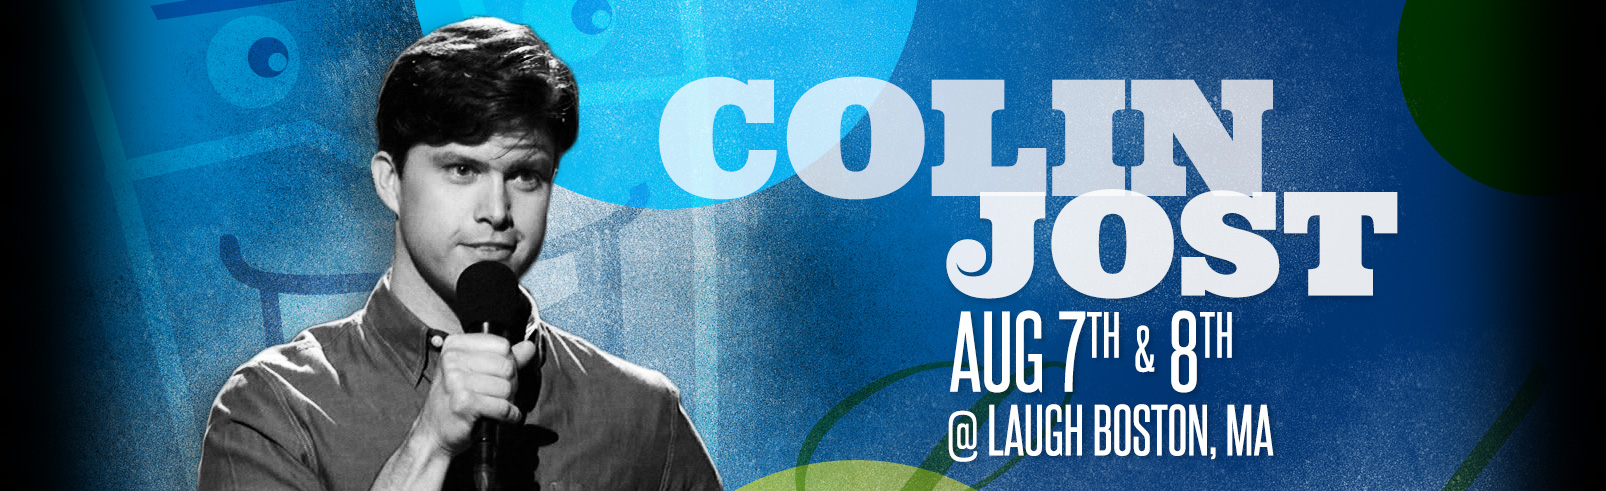 Colin Jost @ Laugh Boston